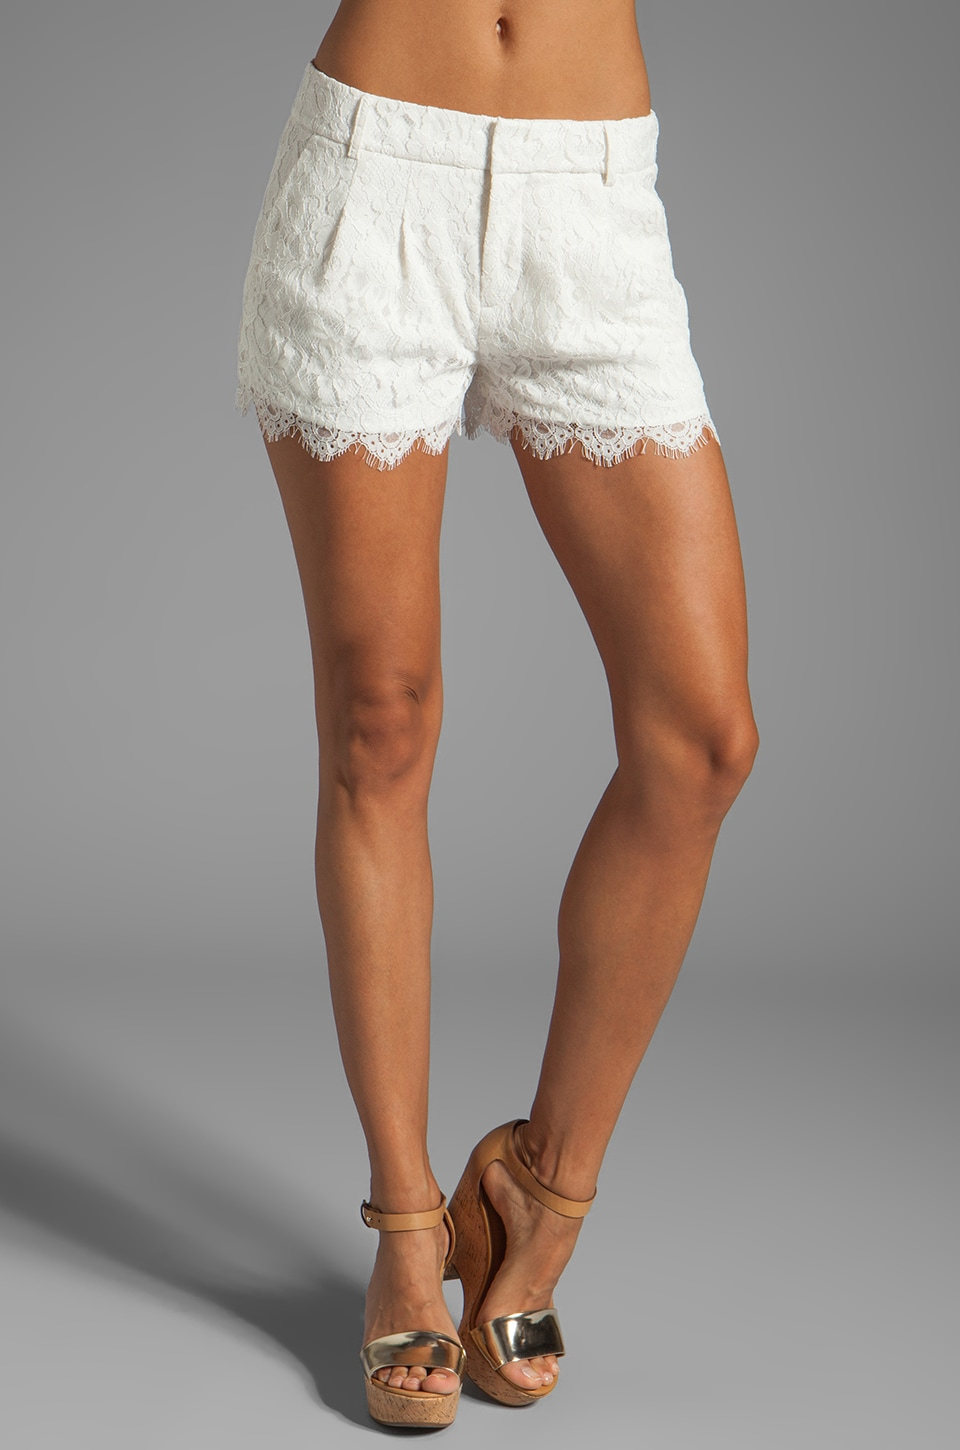 Haute Hippie Lace Short in Swan